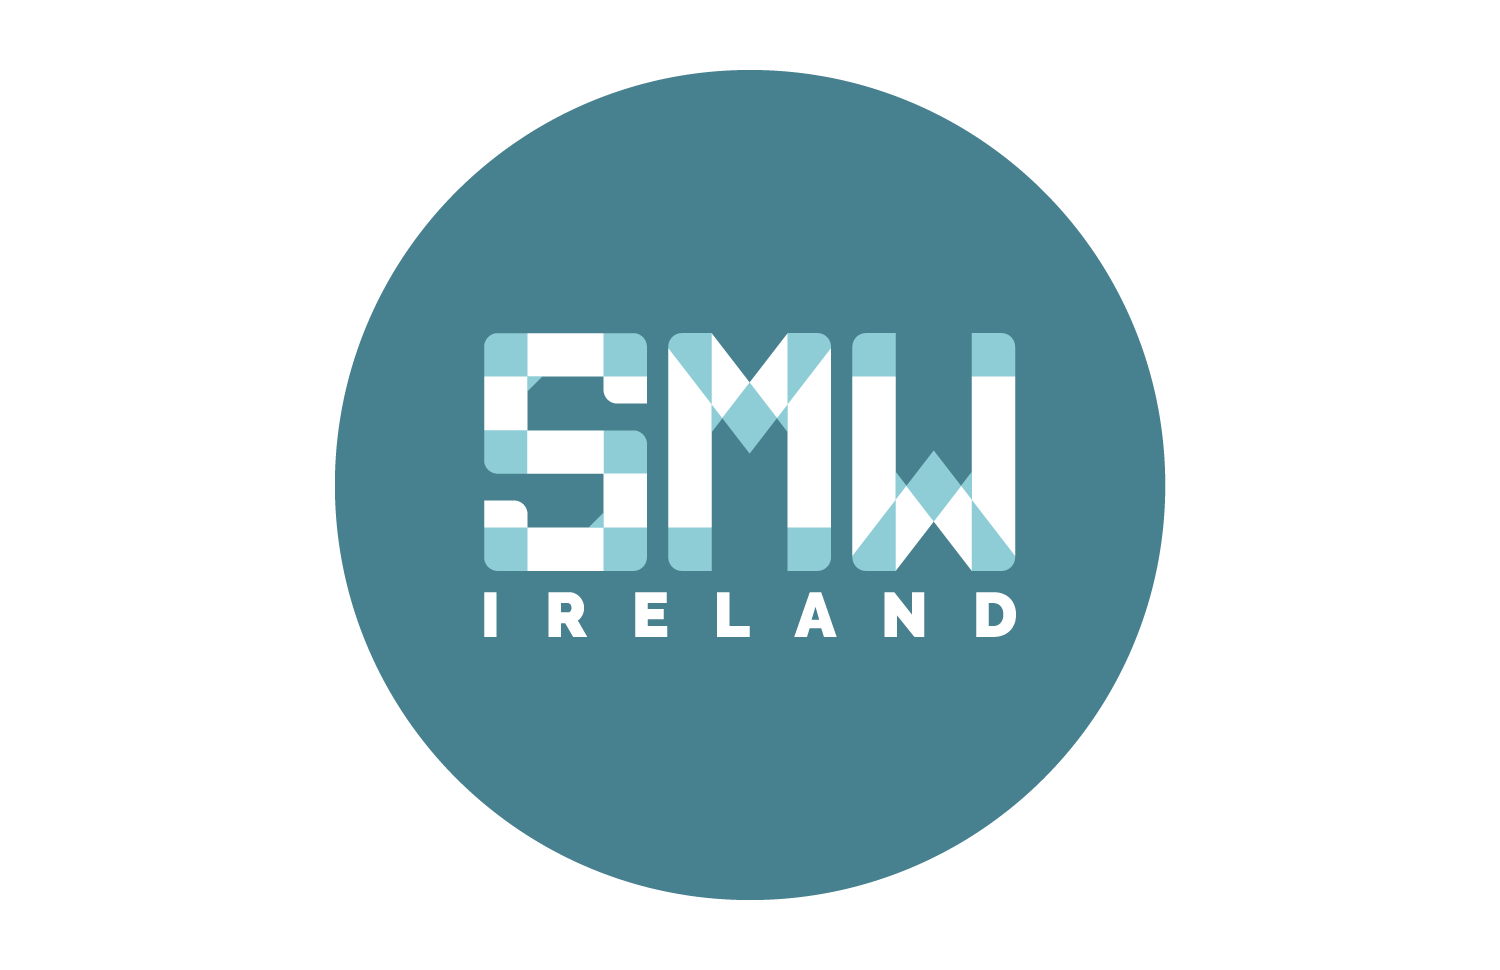 SMW Ireland logo design round background